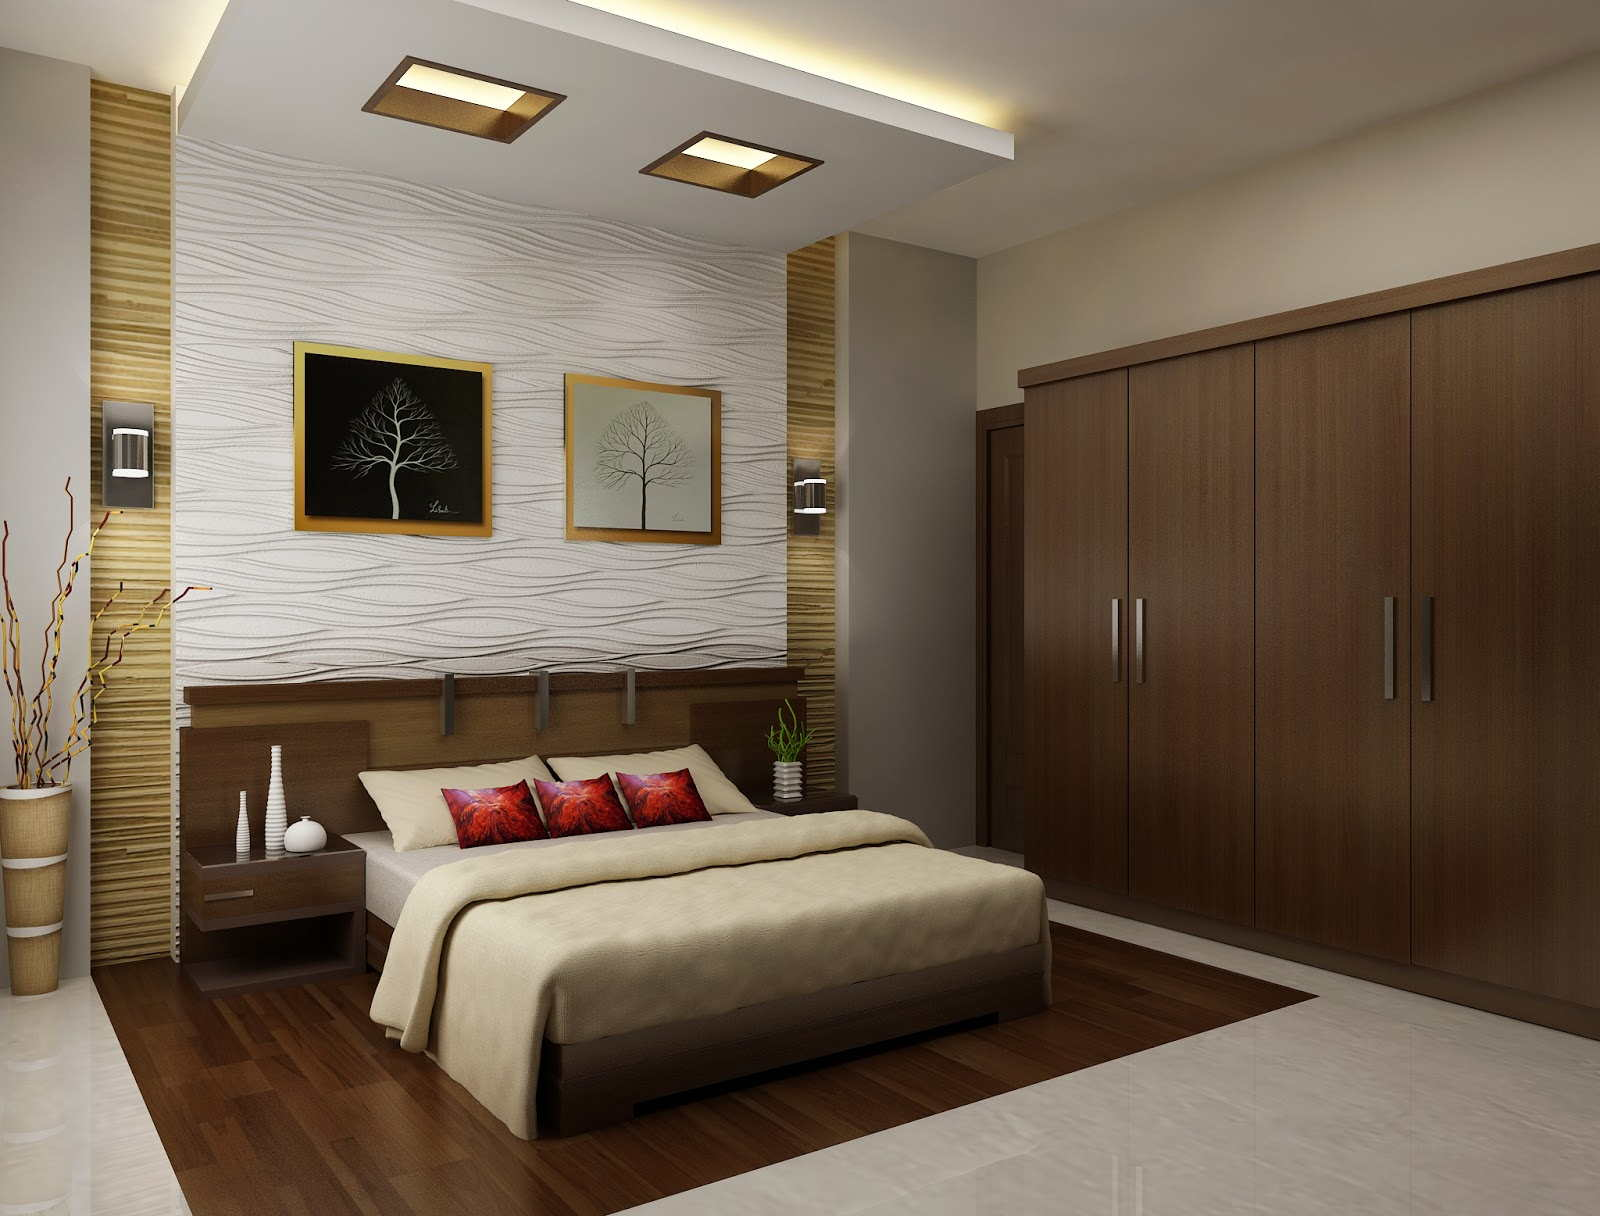 11 Attractive bedroom design ideas that will make your home awesome